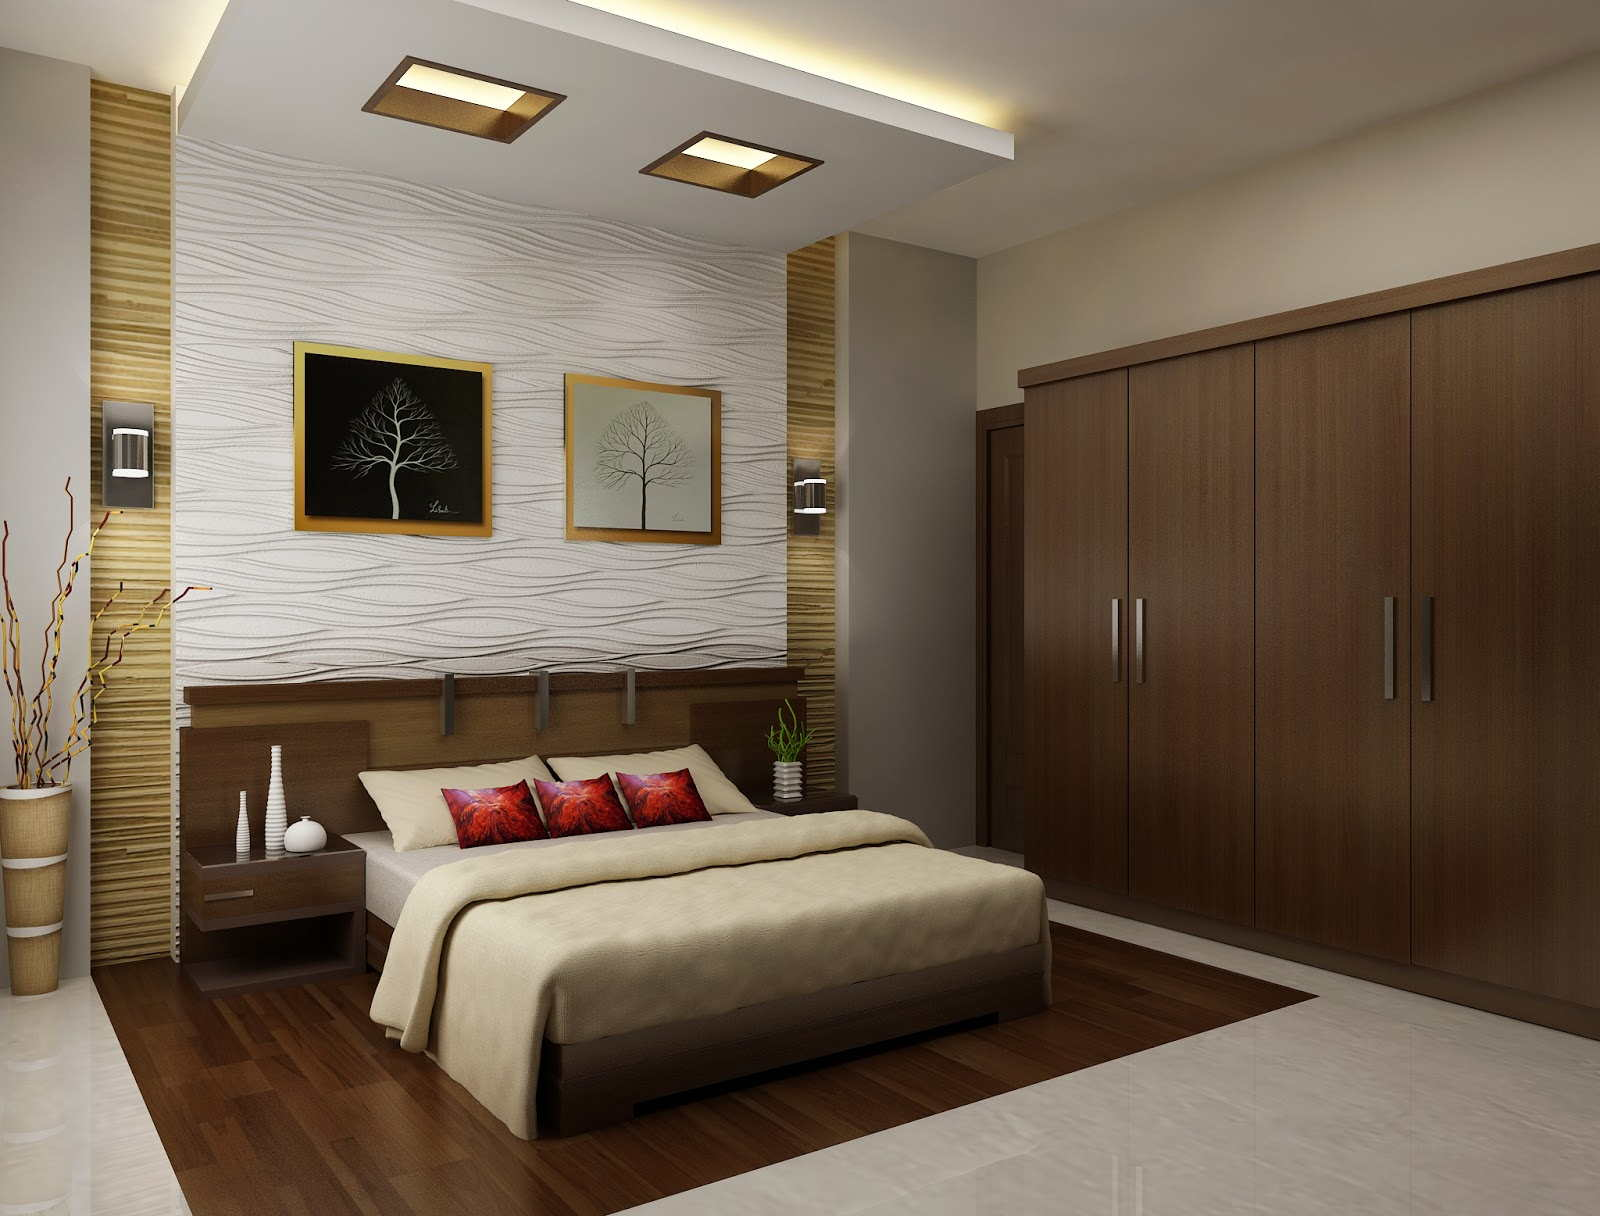 11 Attractive bedroom design ideas that will make your home awesome